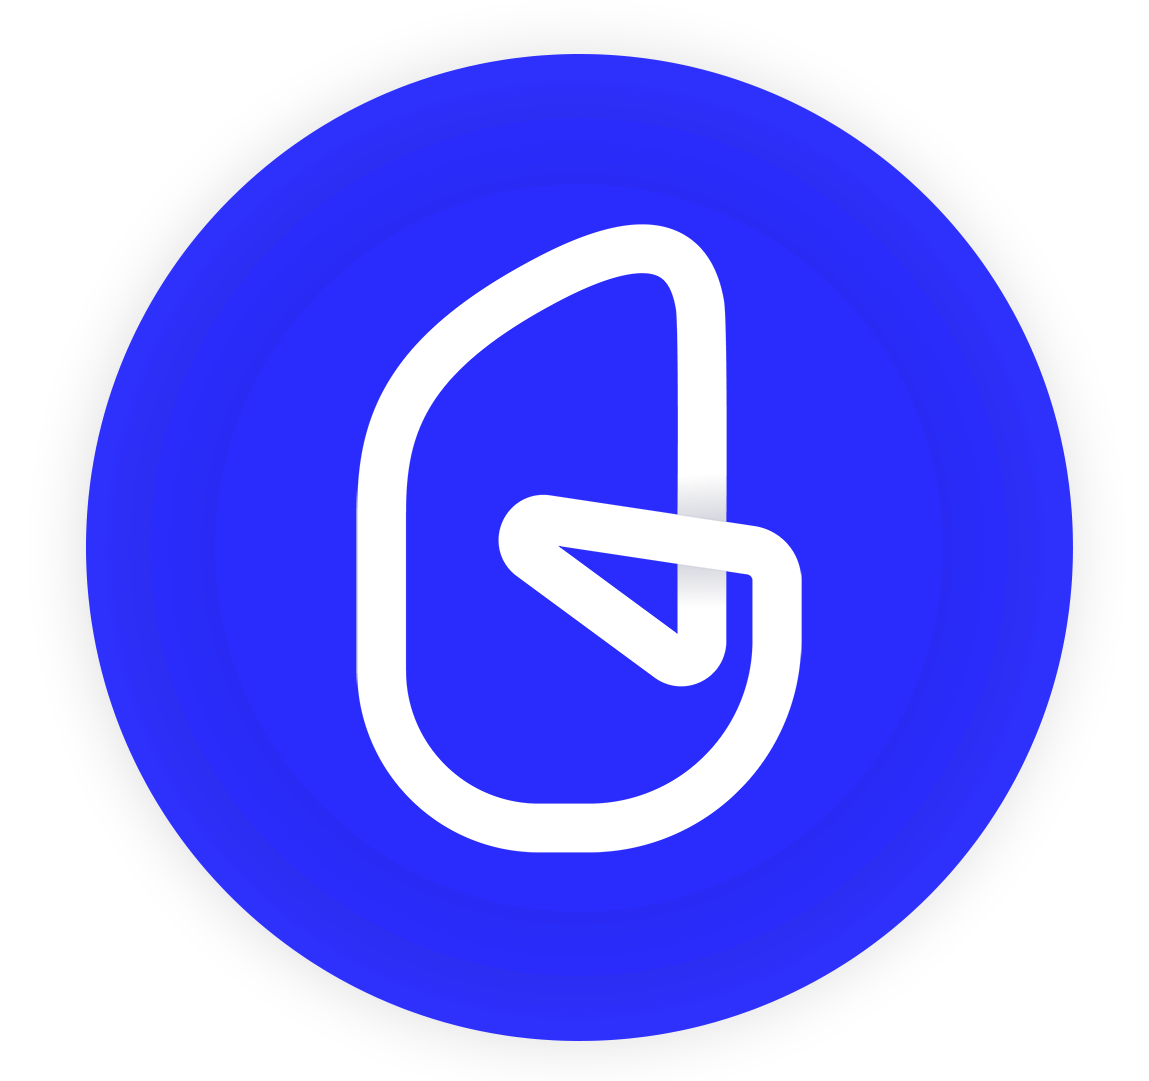 Gigable Logo with blue background